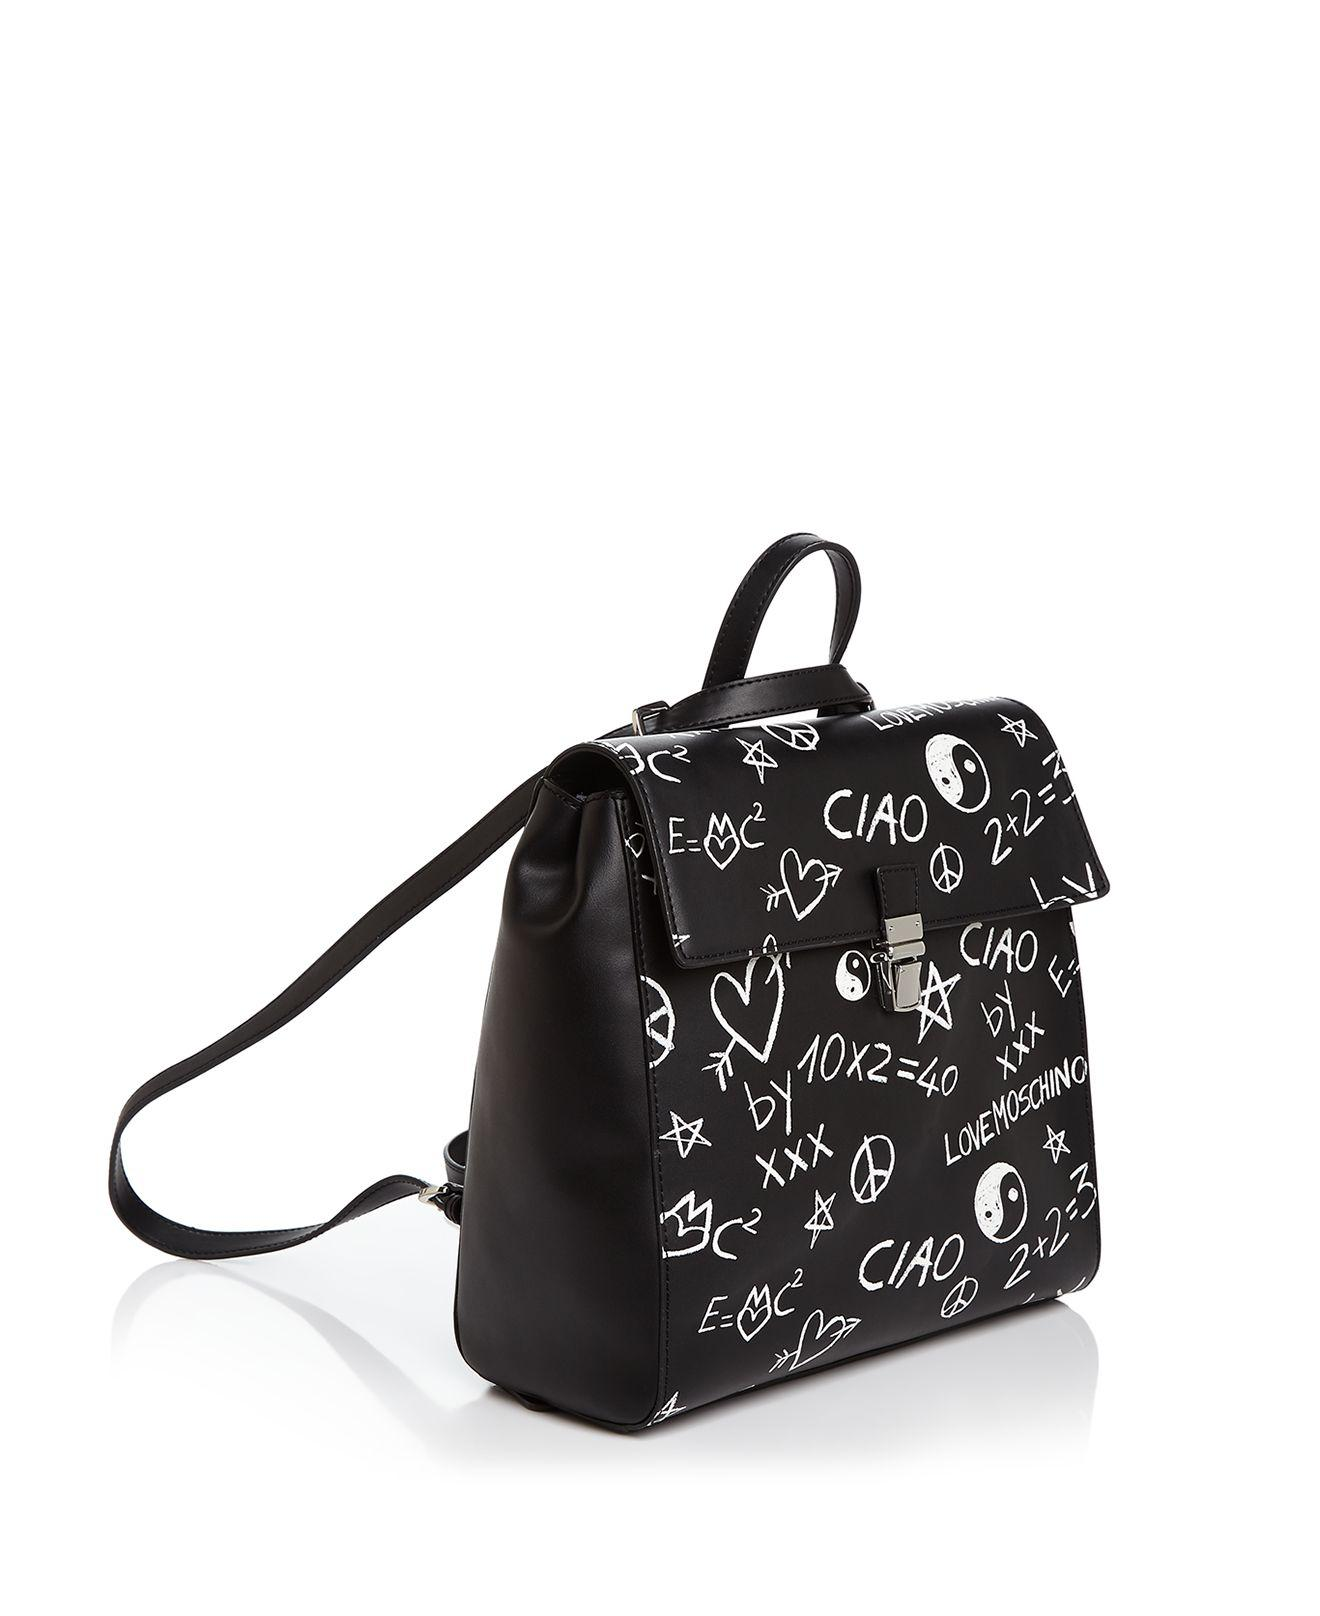 Moschino Amour Sac À Dos Graffiti Moschino réductions TiBWQK8FvK